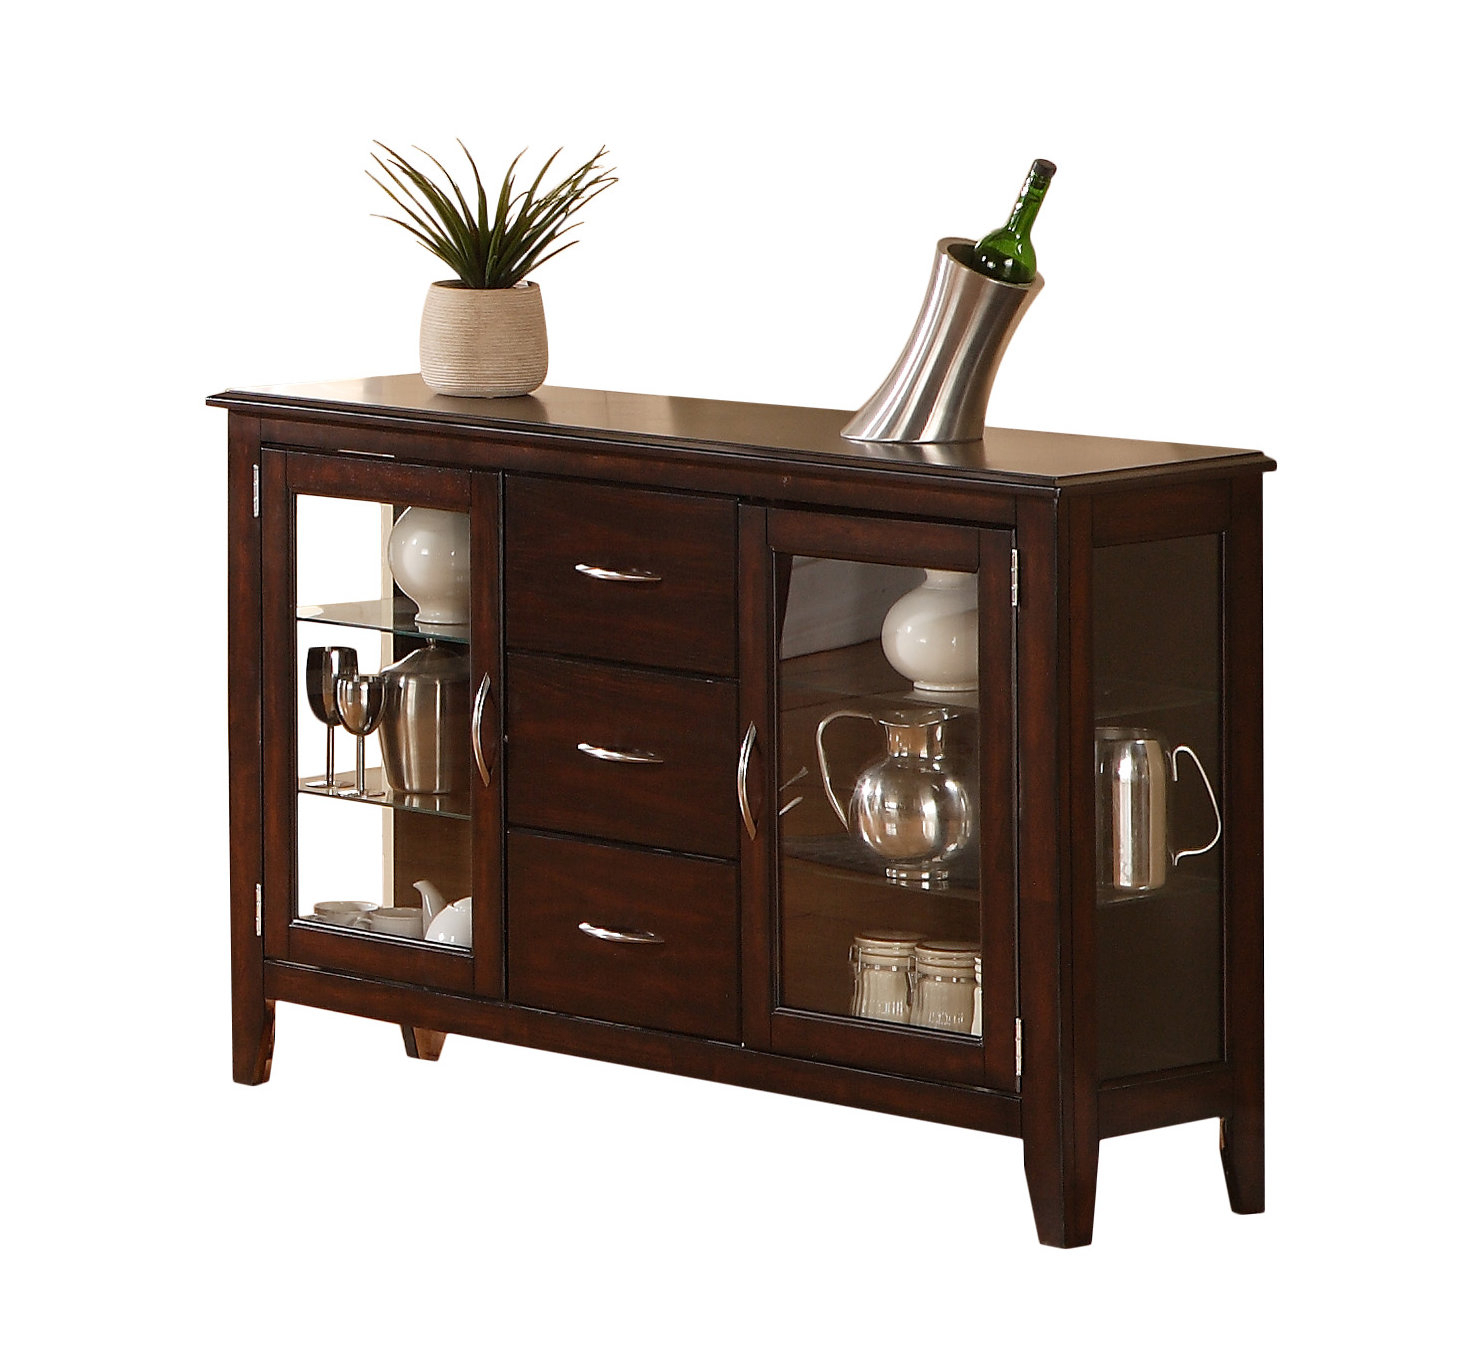 Wildon Home® Sideboards & Buffets You'll Love In 2019 | Wayfair with regard to Sideboards by Wildon Home (Image 30 of 30)